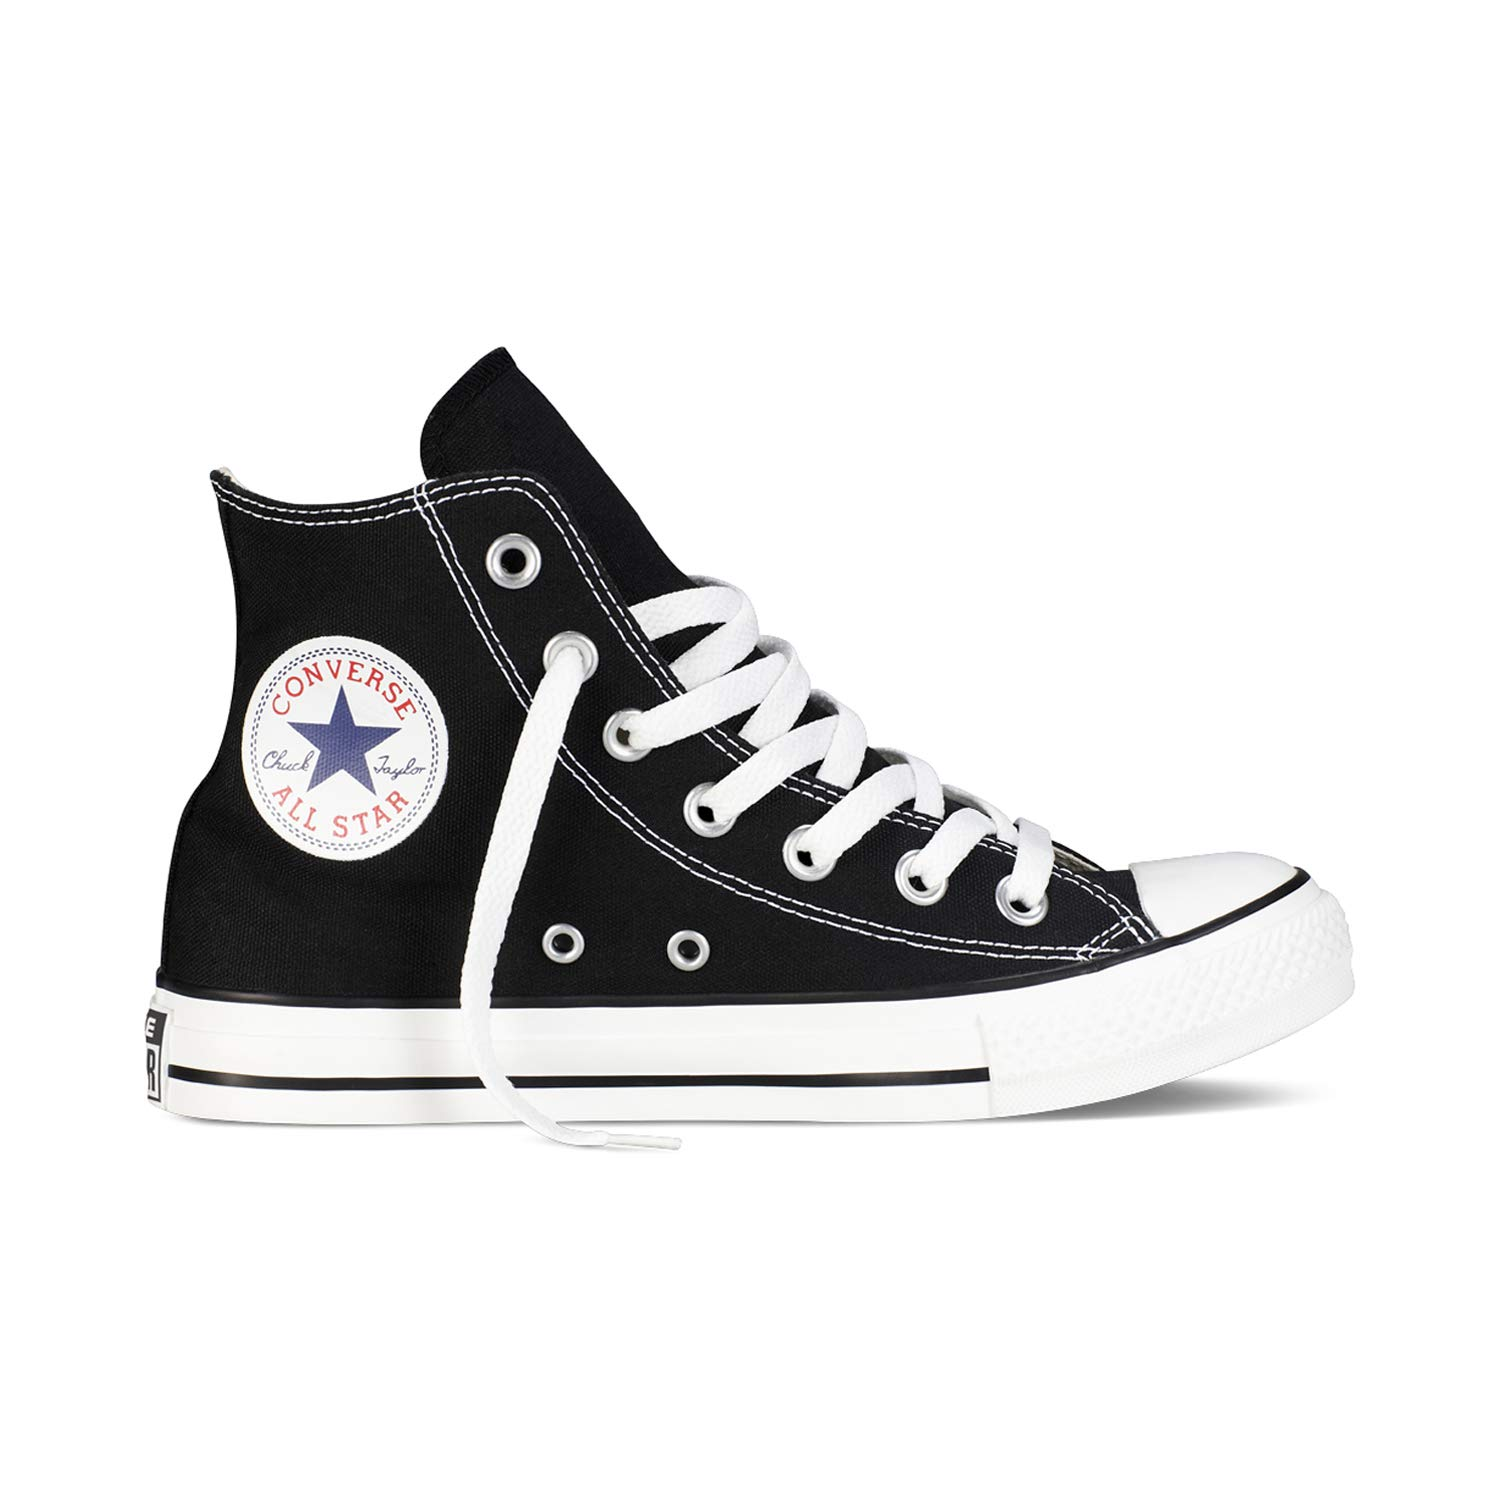 Converse Chuck Taylor All Star High Classic CTAS Hi Womens Mens Unisex Sneakers Canvas Sneaker Sport Shoes with 7kmh Sticker